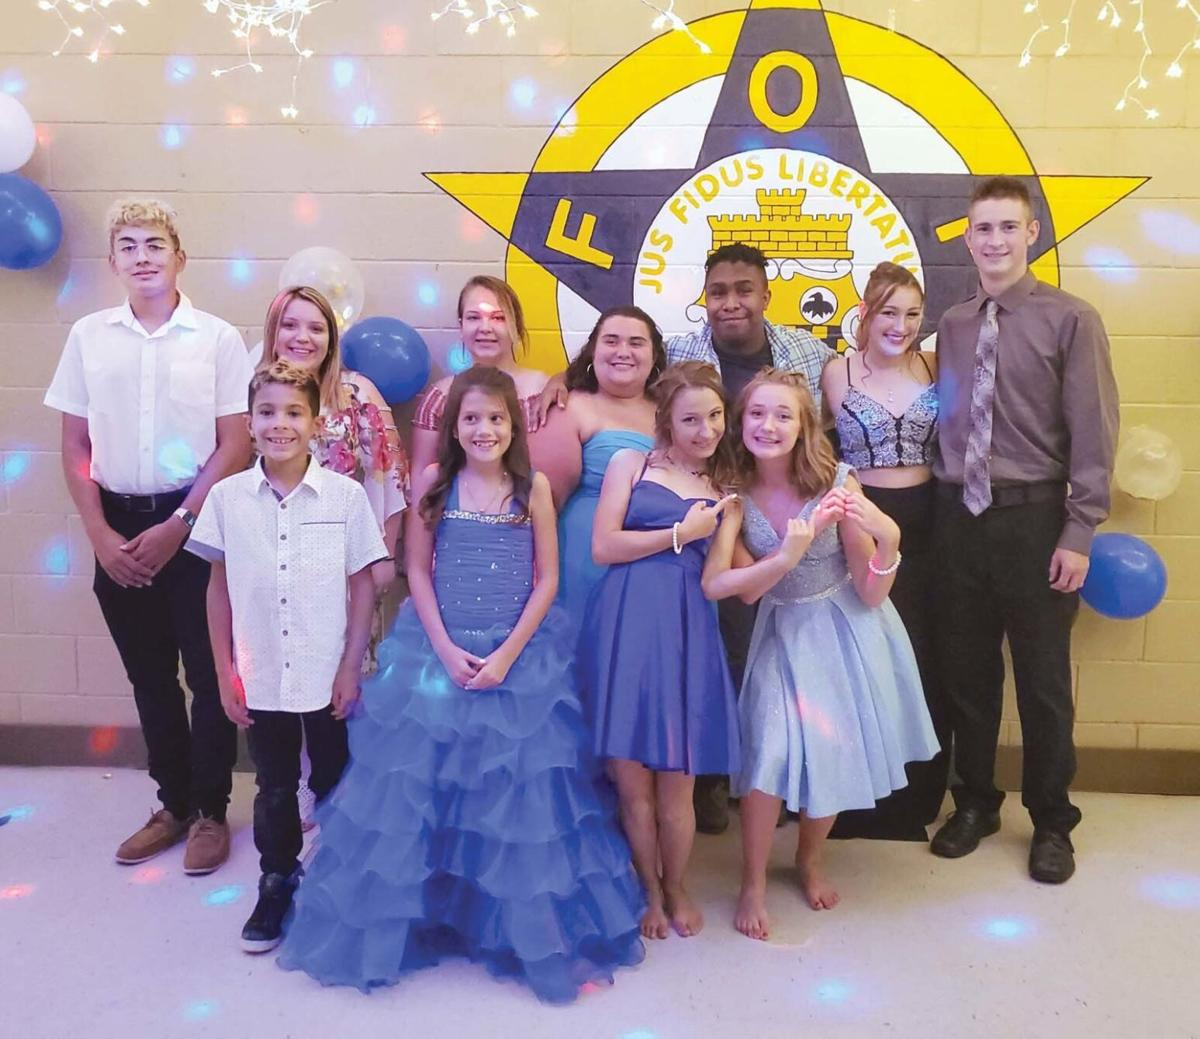 Local students enjoy prom held at Radcliff Fraternal Order of Police